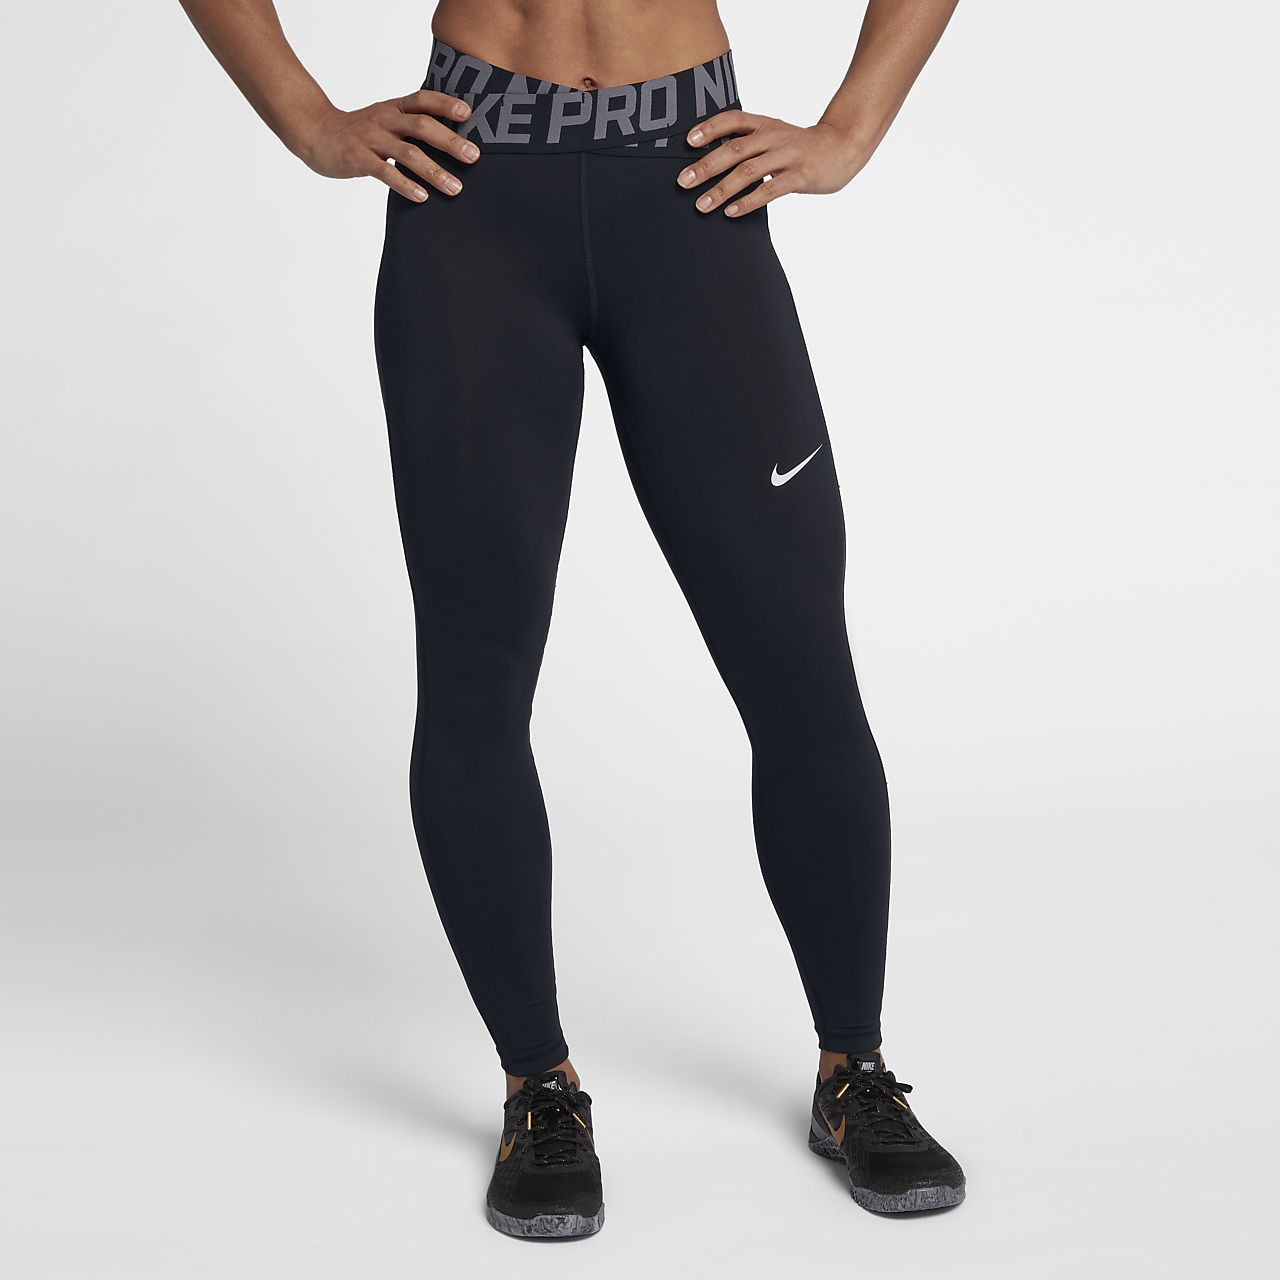 1acbc39a7 Nike Pro Intertwist Women's High-Rise Training Tights. Nike.com CA